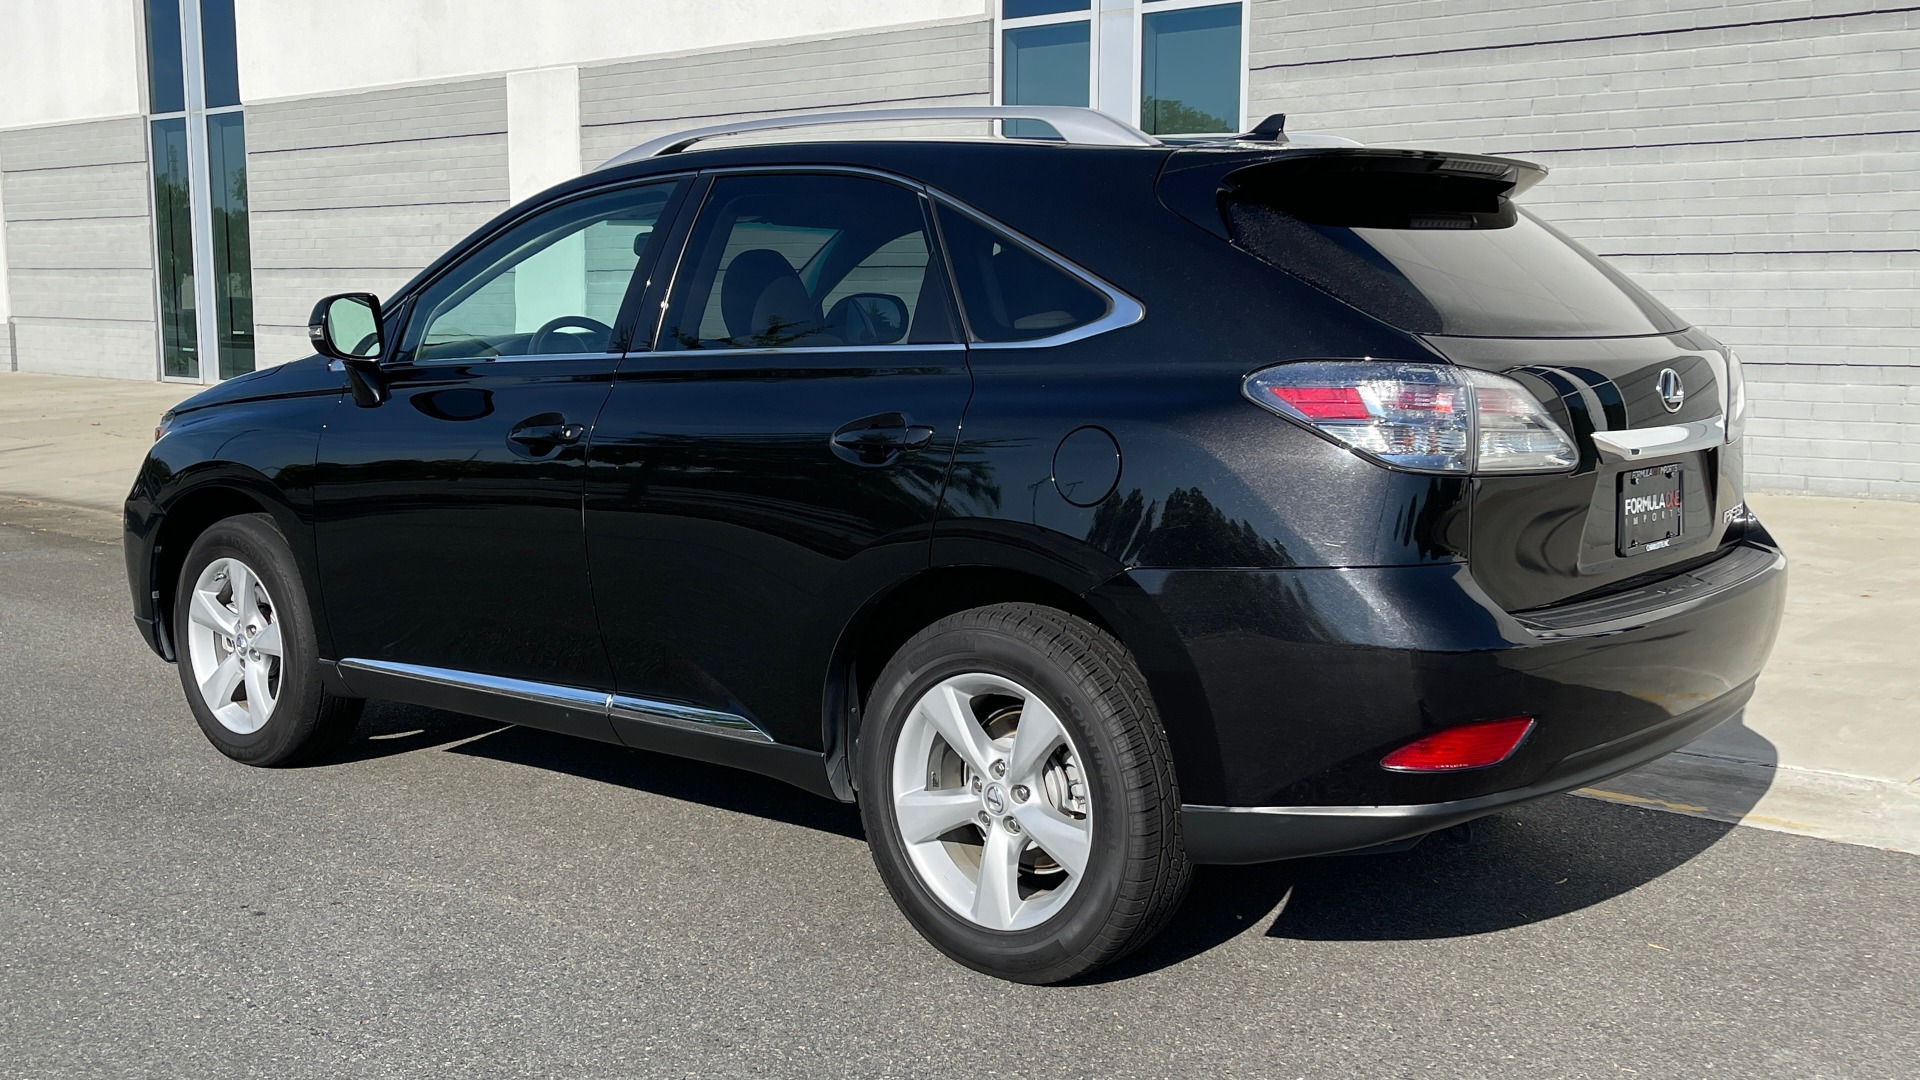 Used 2011 Lexus RX 350 PREMIUM / TOWING PREP PKG / VENTILATED STS / SUNROOF / REARVIEW for sale Sold at Formula Imports in Charlotte NC 28227 4